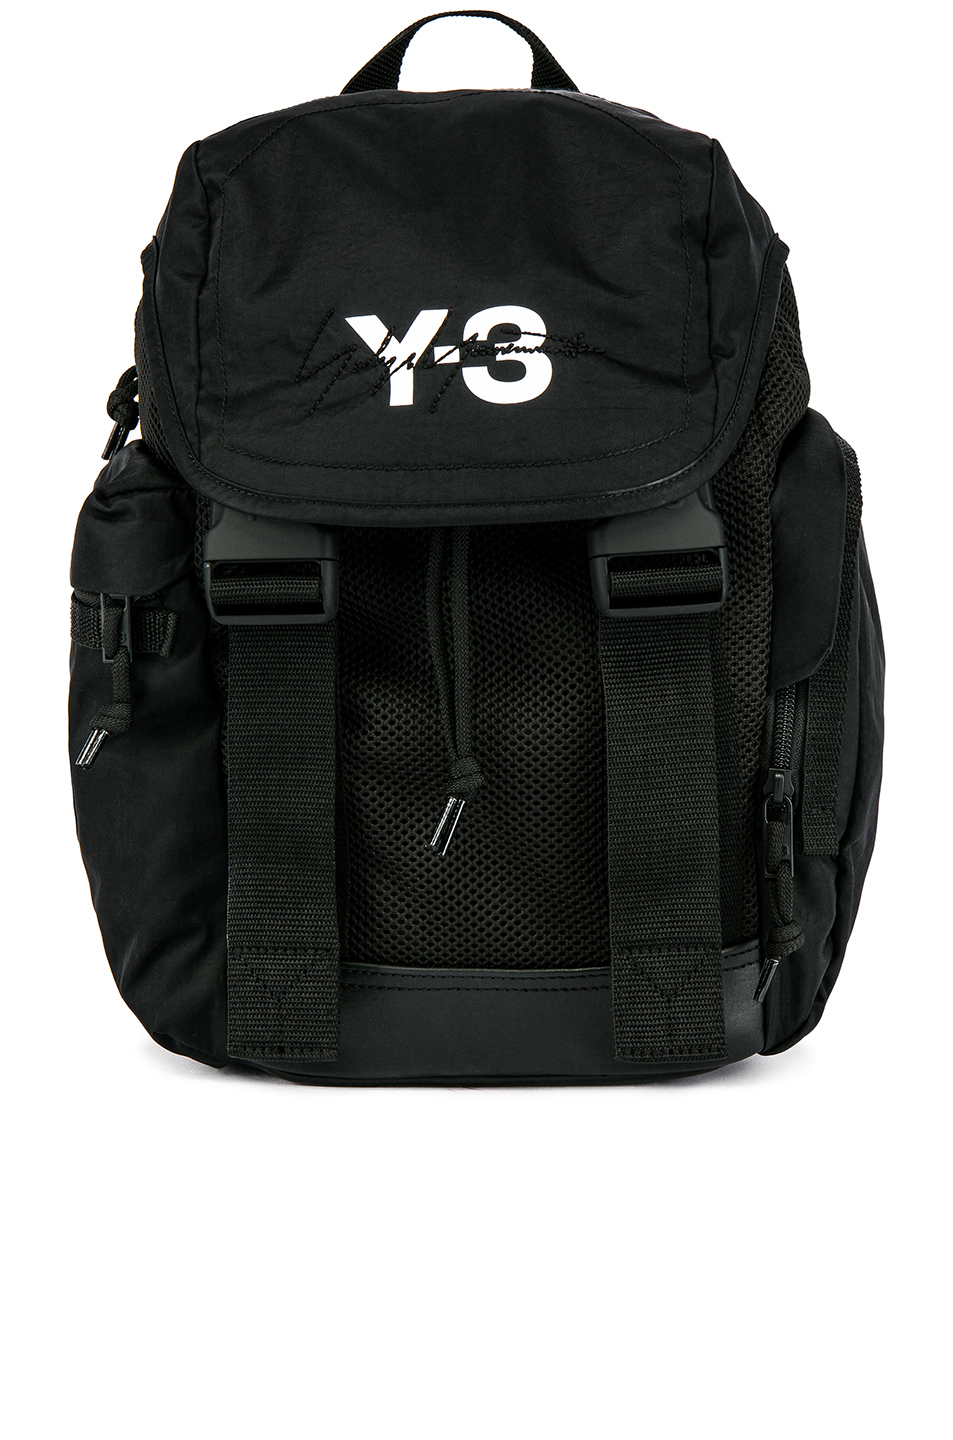 9d543f094be0 Buy Original Y-3 Yohji Yamamoto Mobility Backpack at Indonesia ...